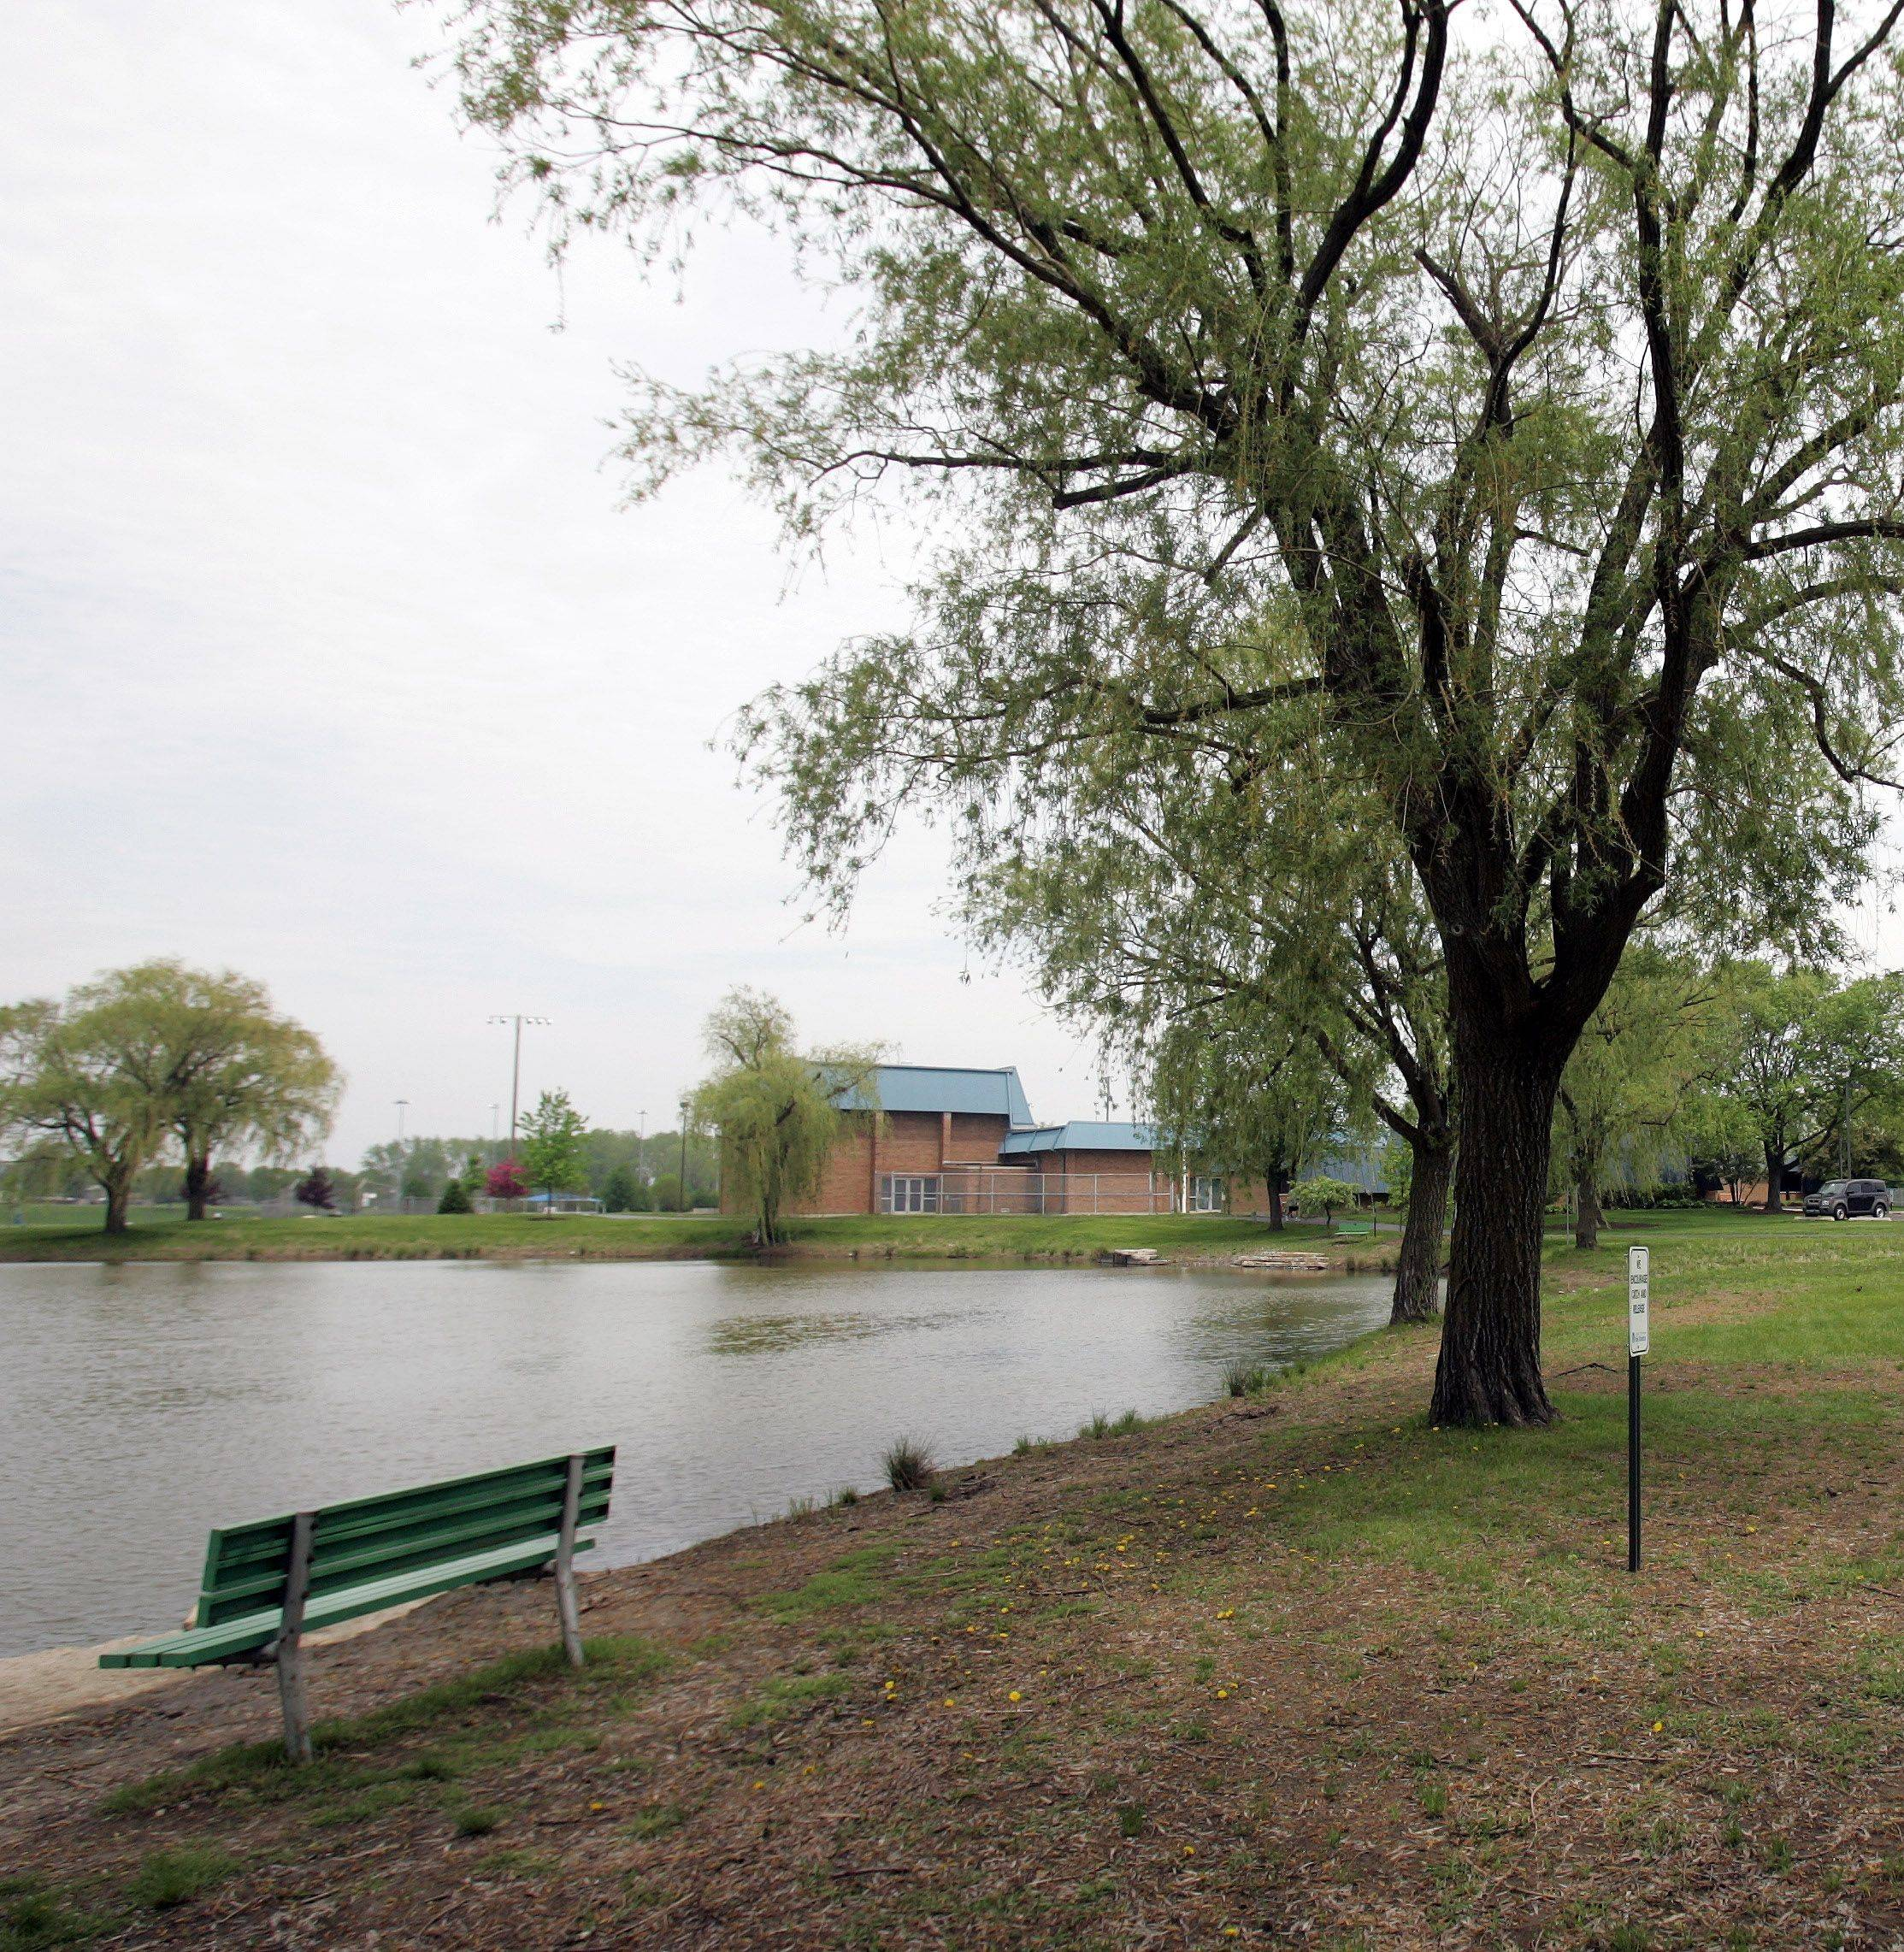 A $5 million stormwater management project is planned for Armstrong Park in Carol Stream. Some residents who live nearby object to the height of a proposed water reservoir's berm.